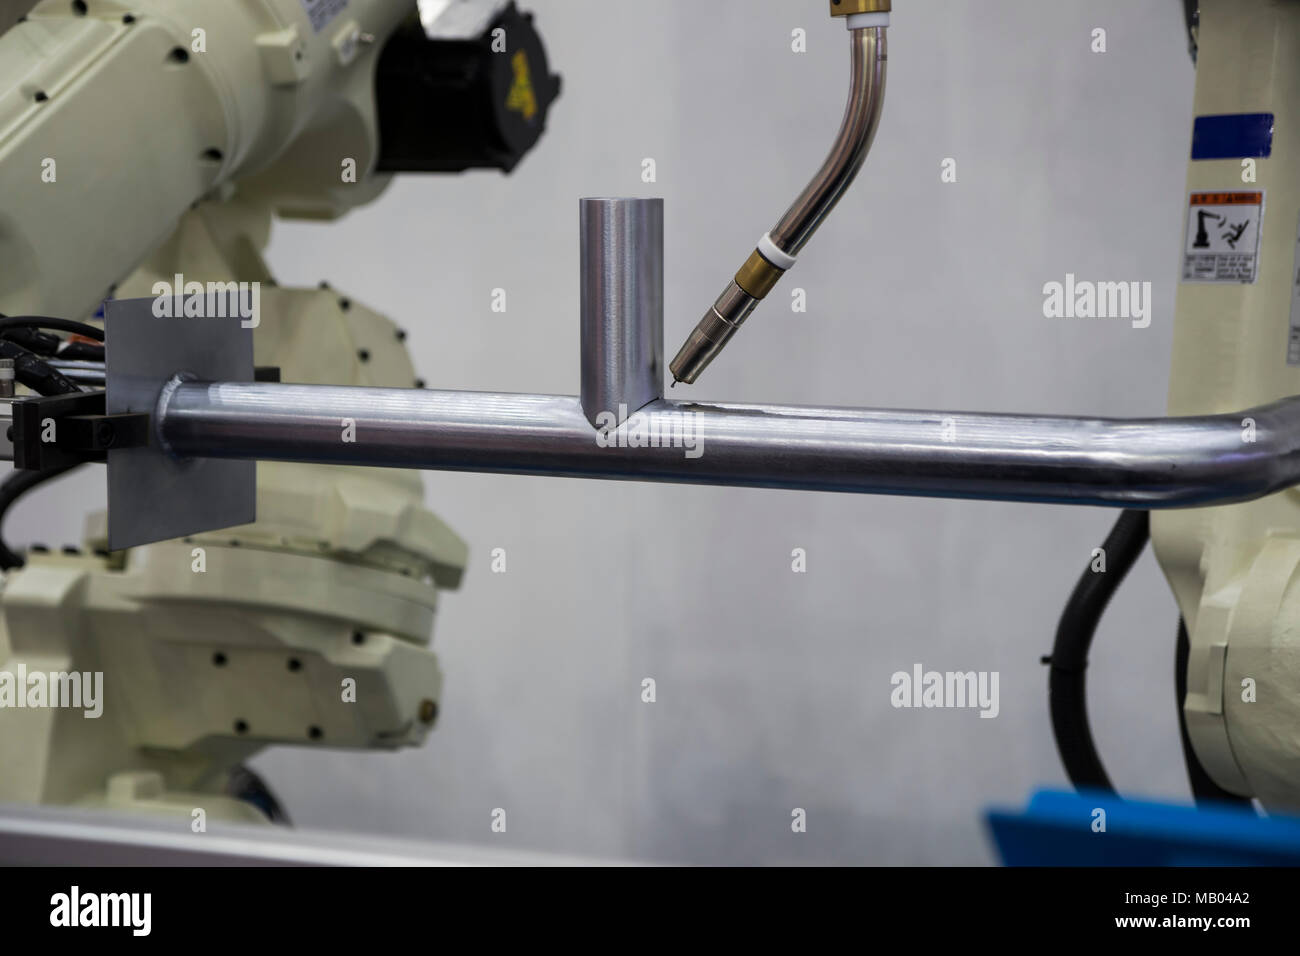 Robot arm welding pipe ; focus at torch - Stock Image